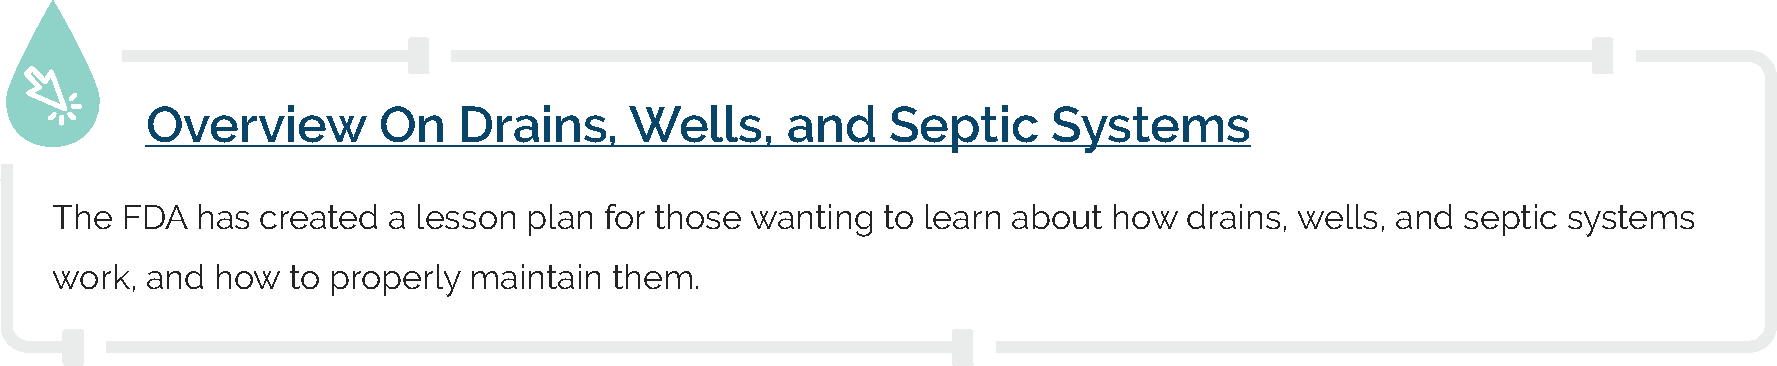 Overview On Drains, Wells, and Septic Systems